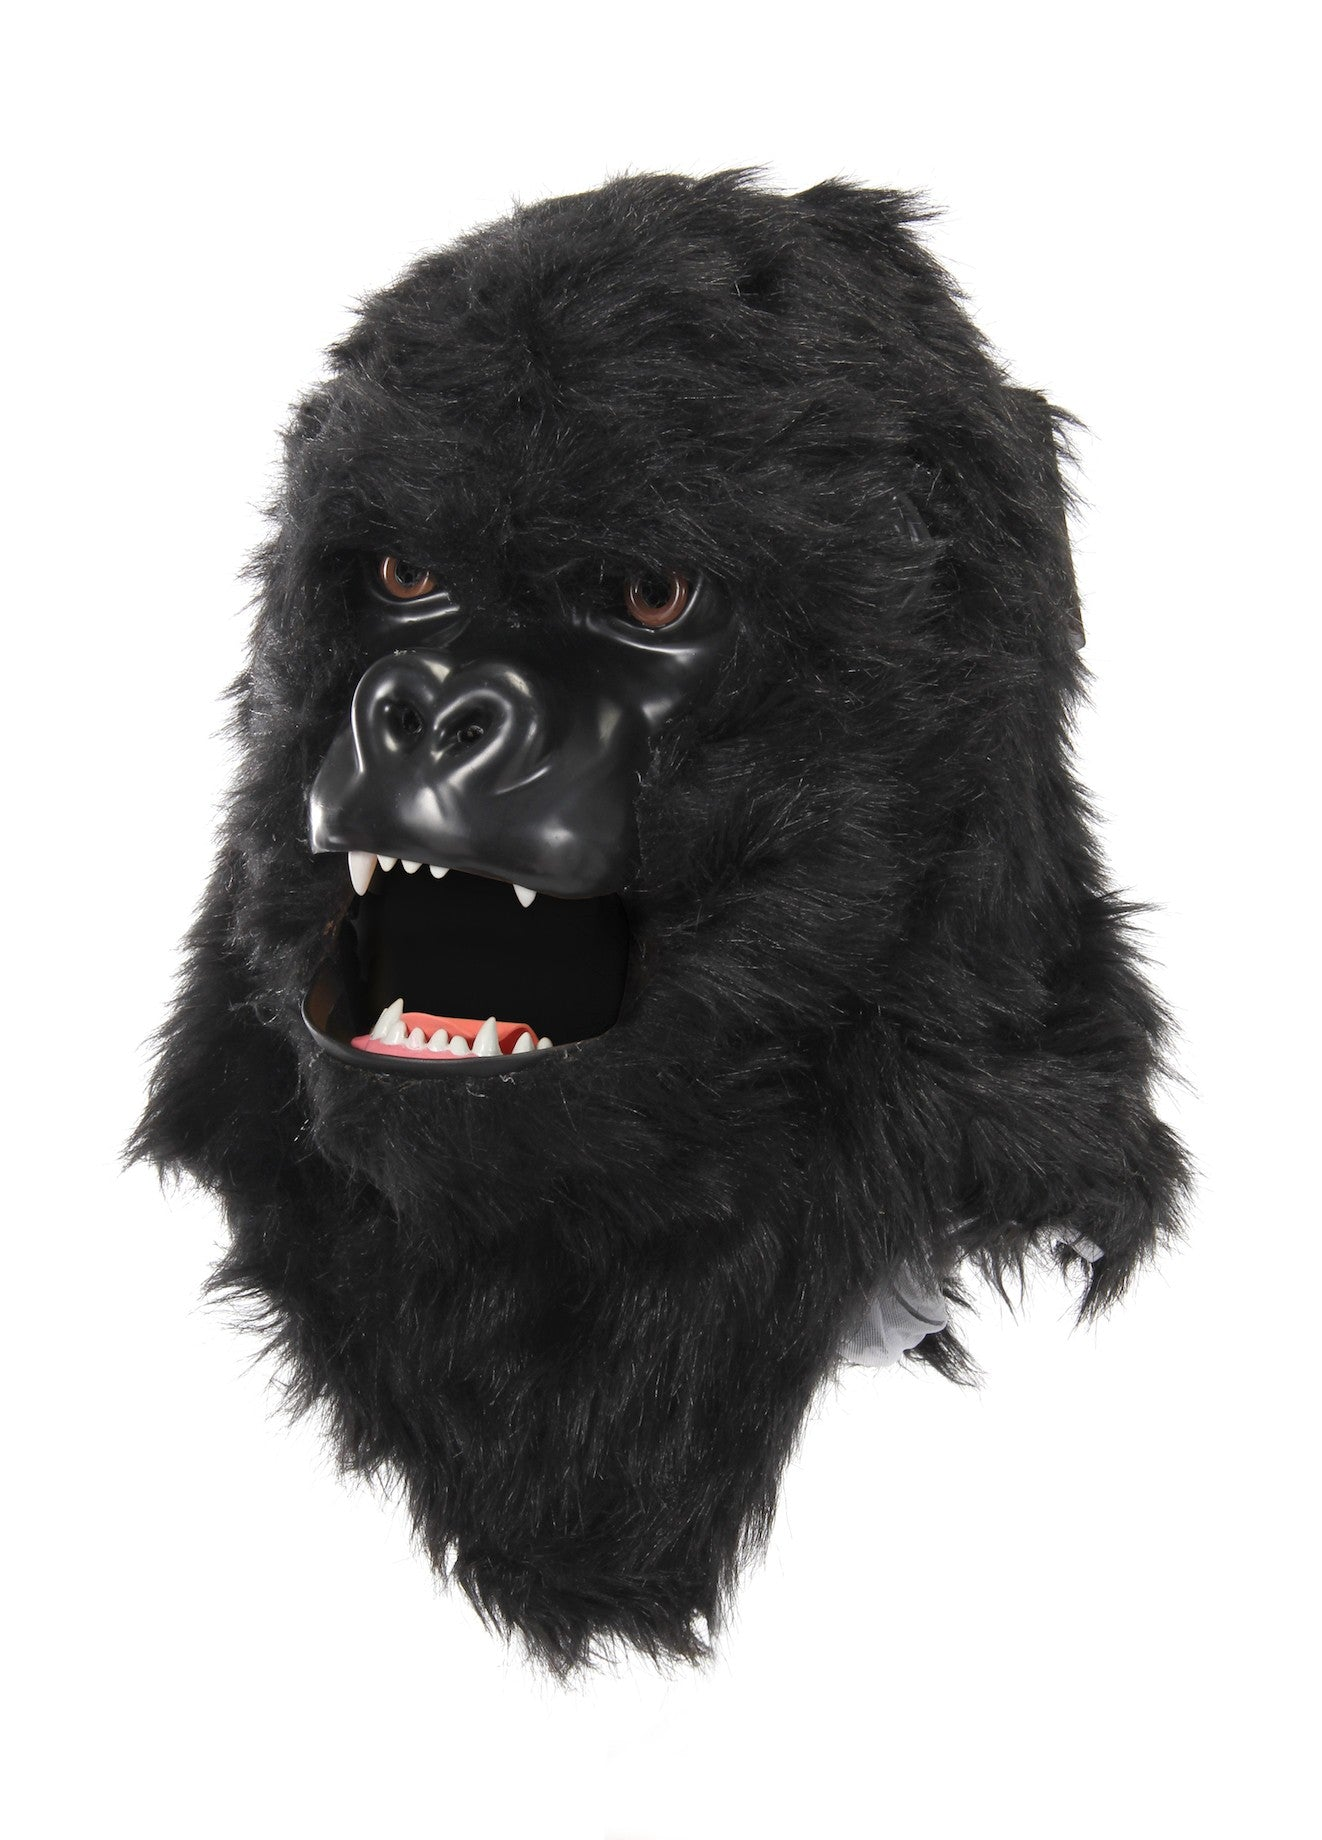 Gorilla Mask with Moving Mouth Mover by Elope